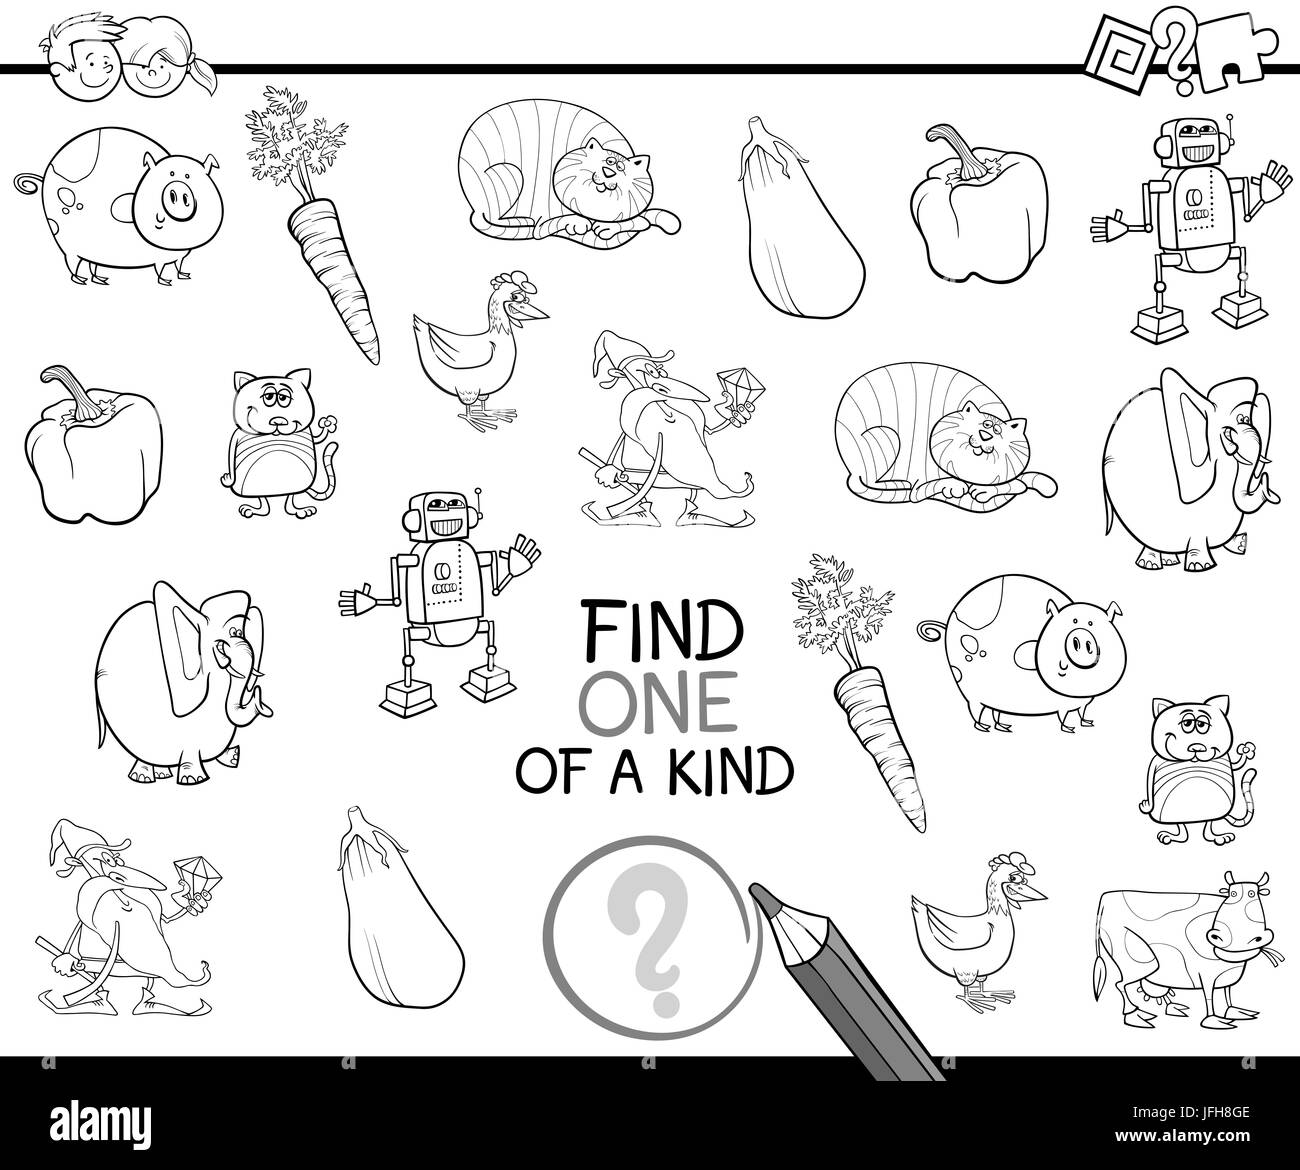 one of a kind for coloring Stock Photo